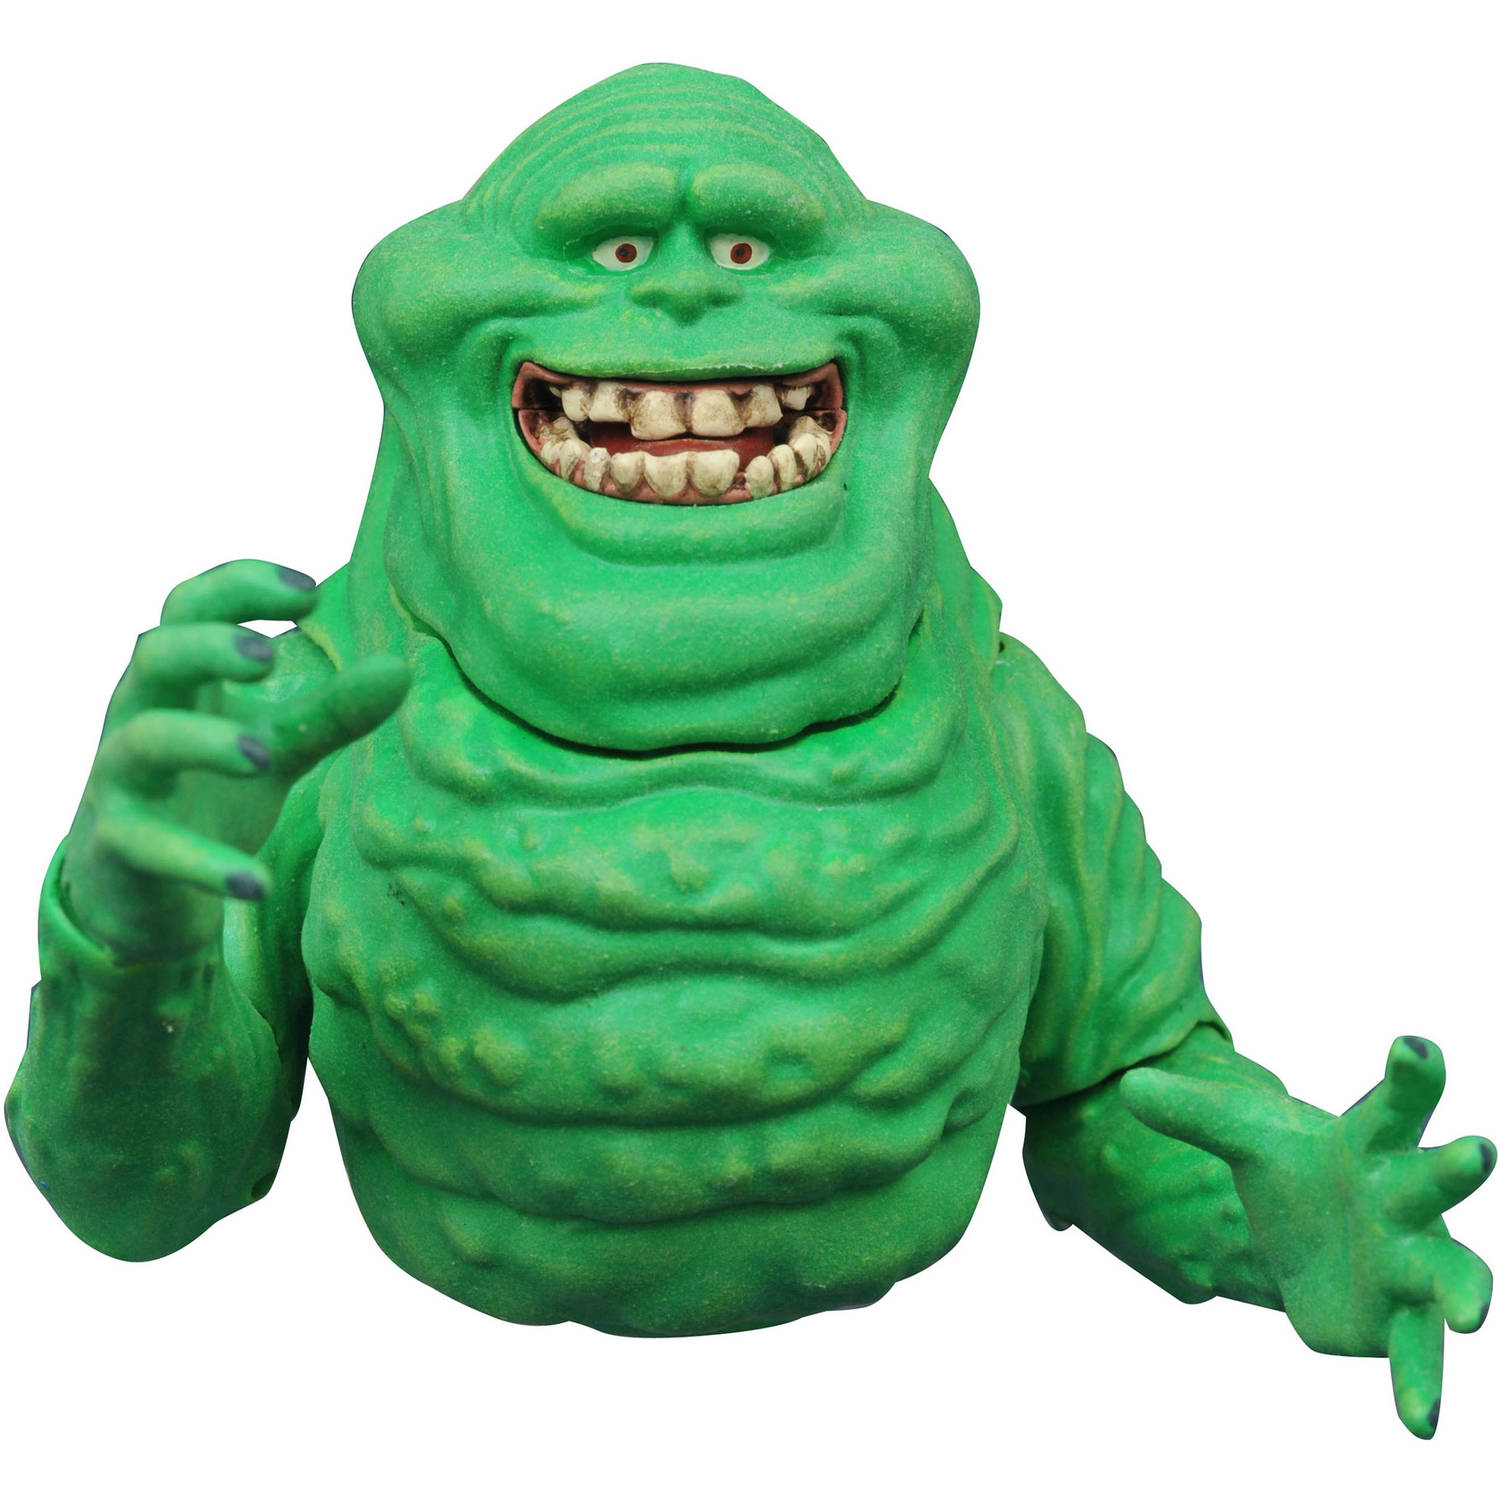 Diamond Select Toys Ghostbusters Select Series 3 Slimer Action Figure by Diamond Select Toys